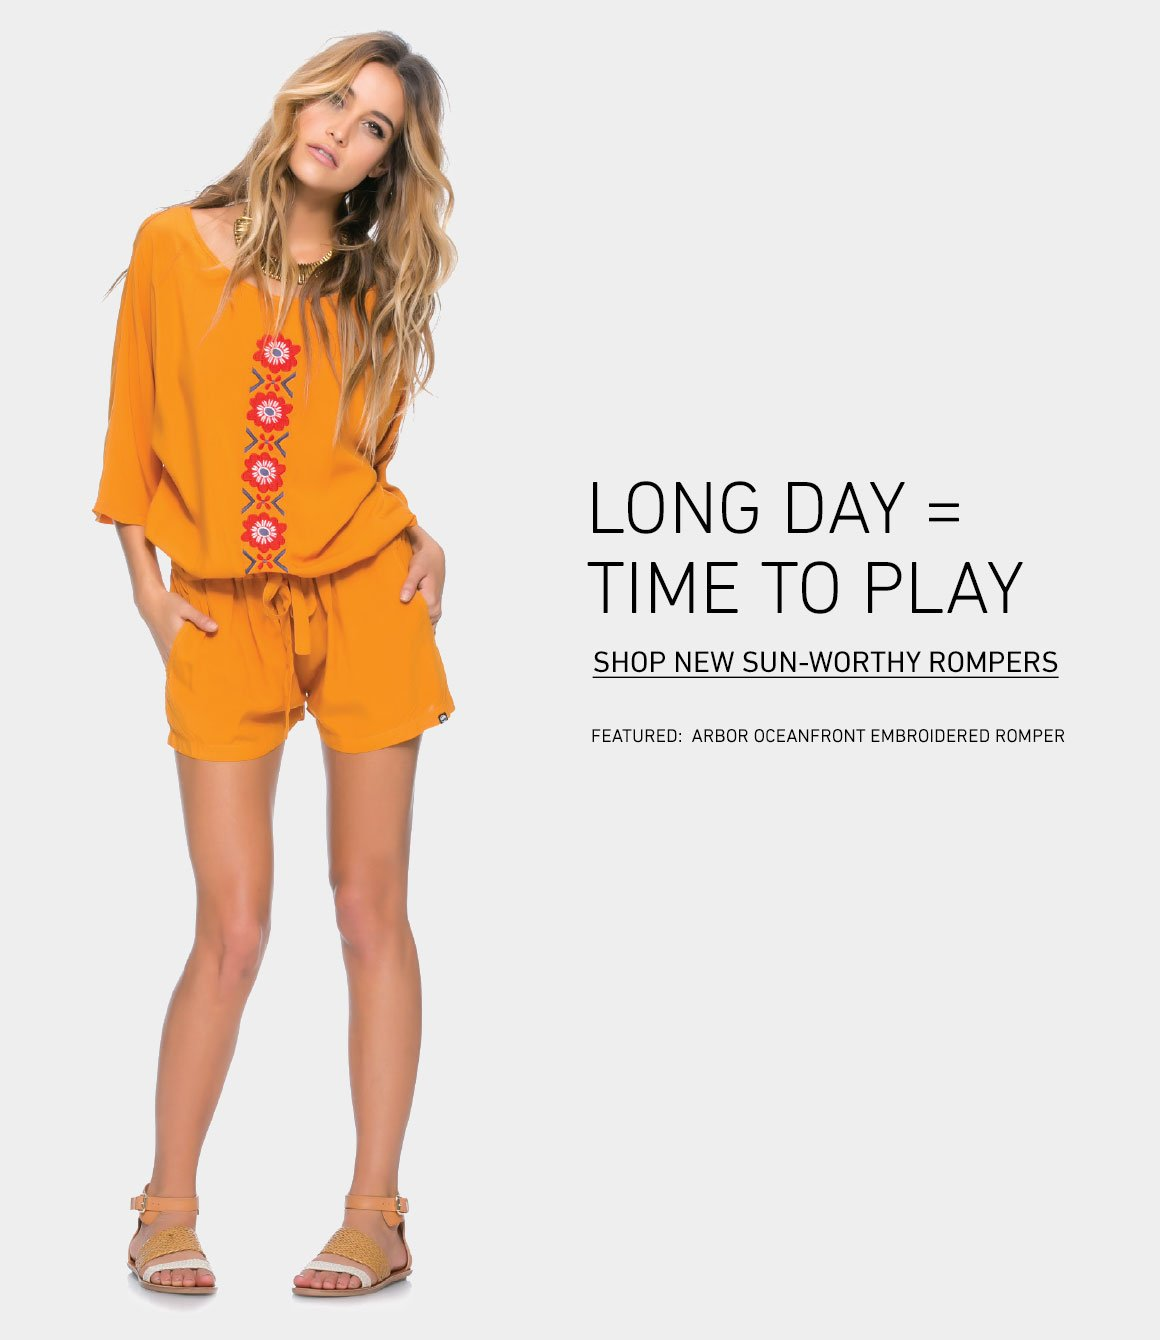 Long Day = Time To Play: New Rompers